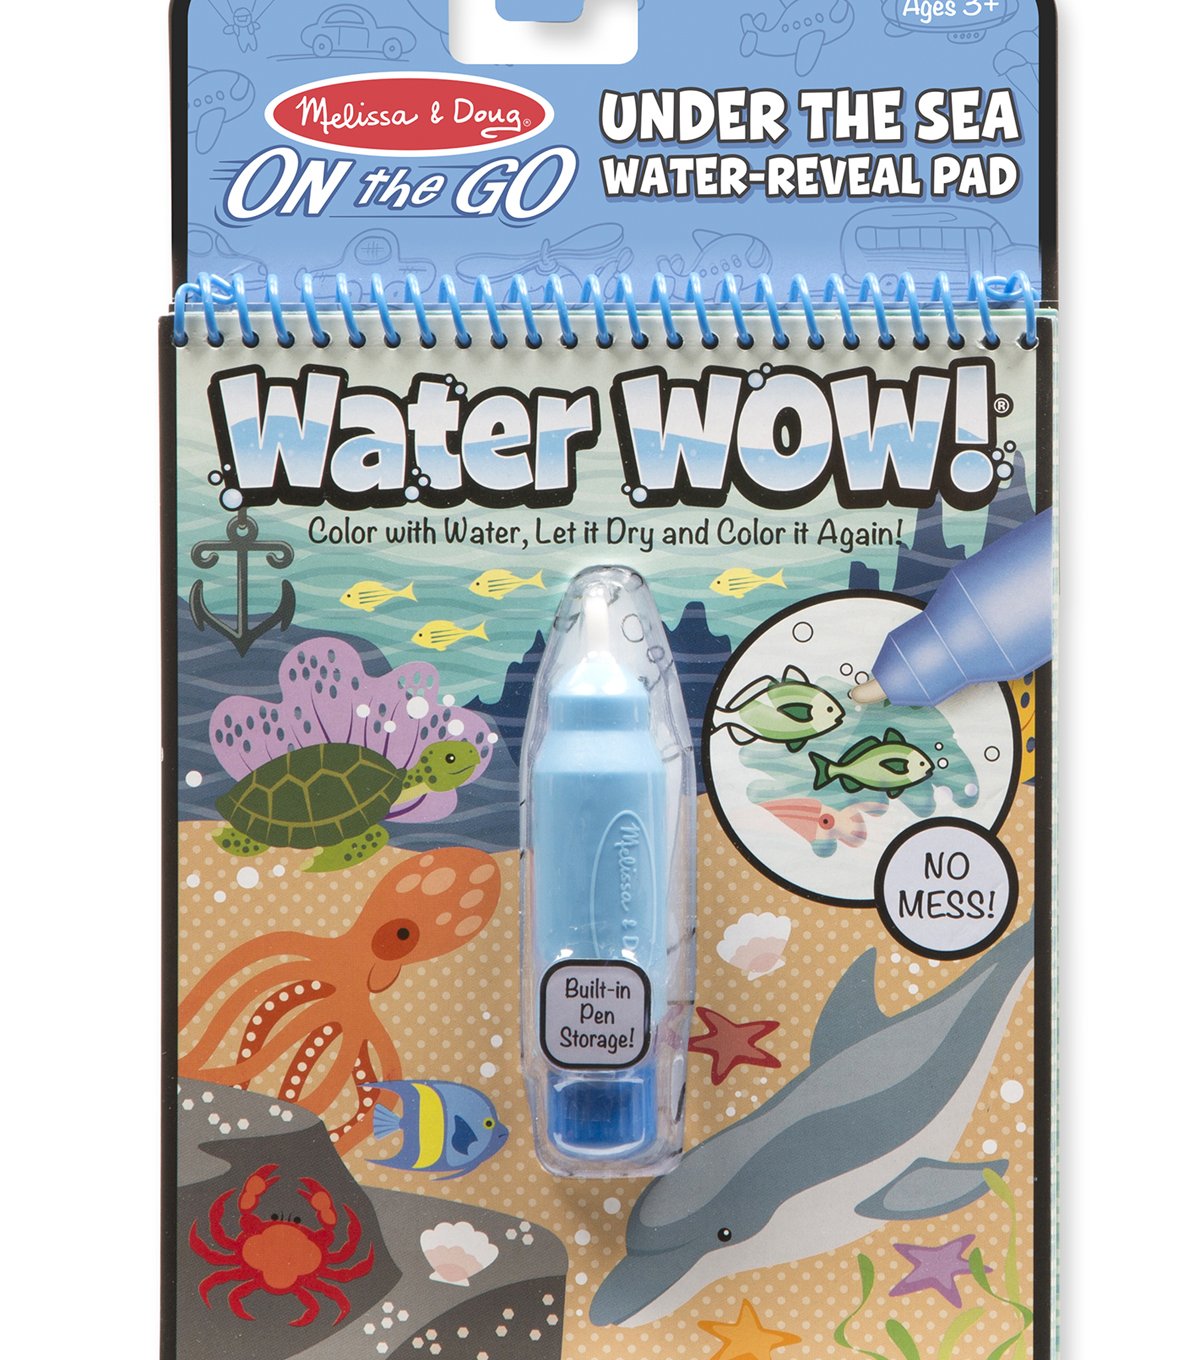 Melissa & Doug On The Go Water Wow! Water Reveal Pad Under The Sea                      Melissa & Doug On The Go Water Wow! Water Reveal Pad Under The Sea by Melissa & Doug